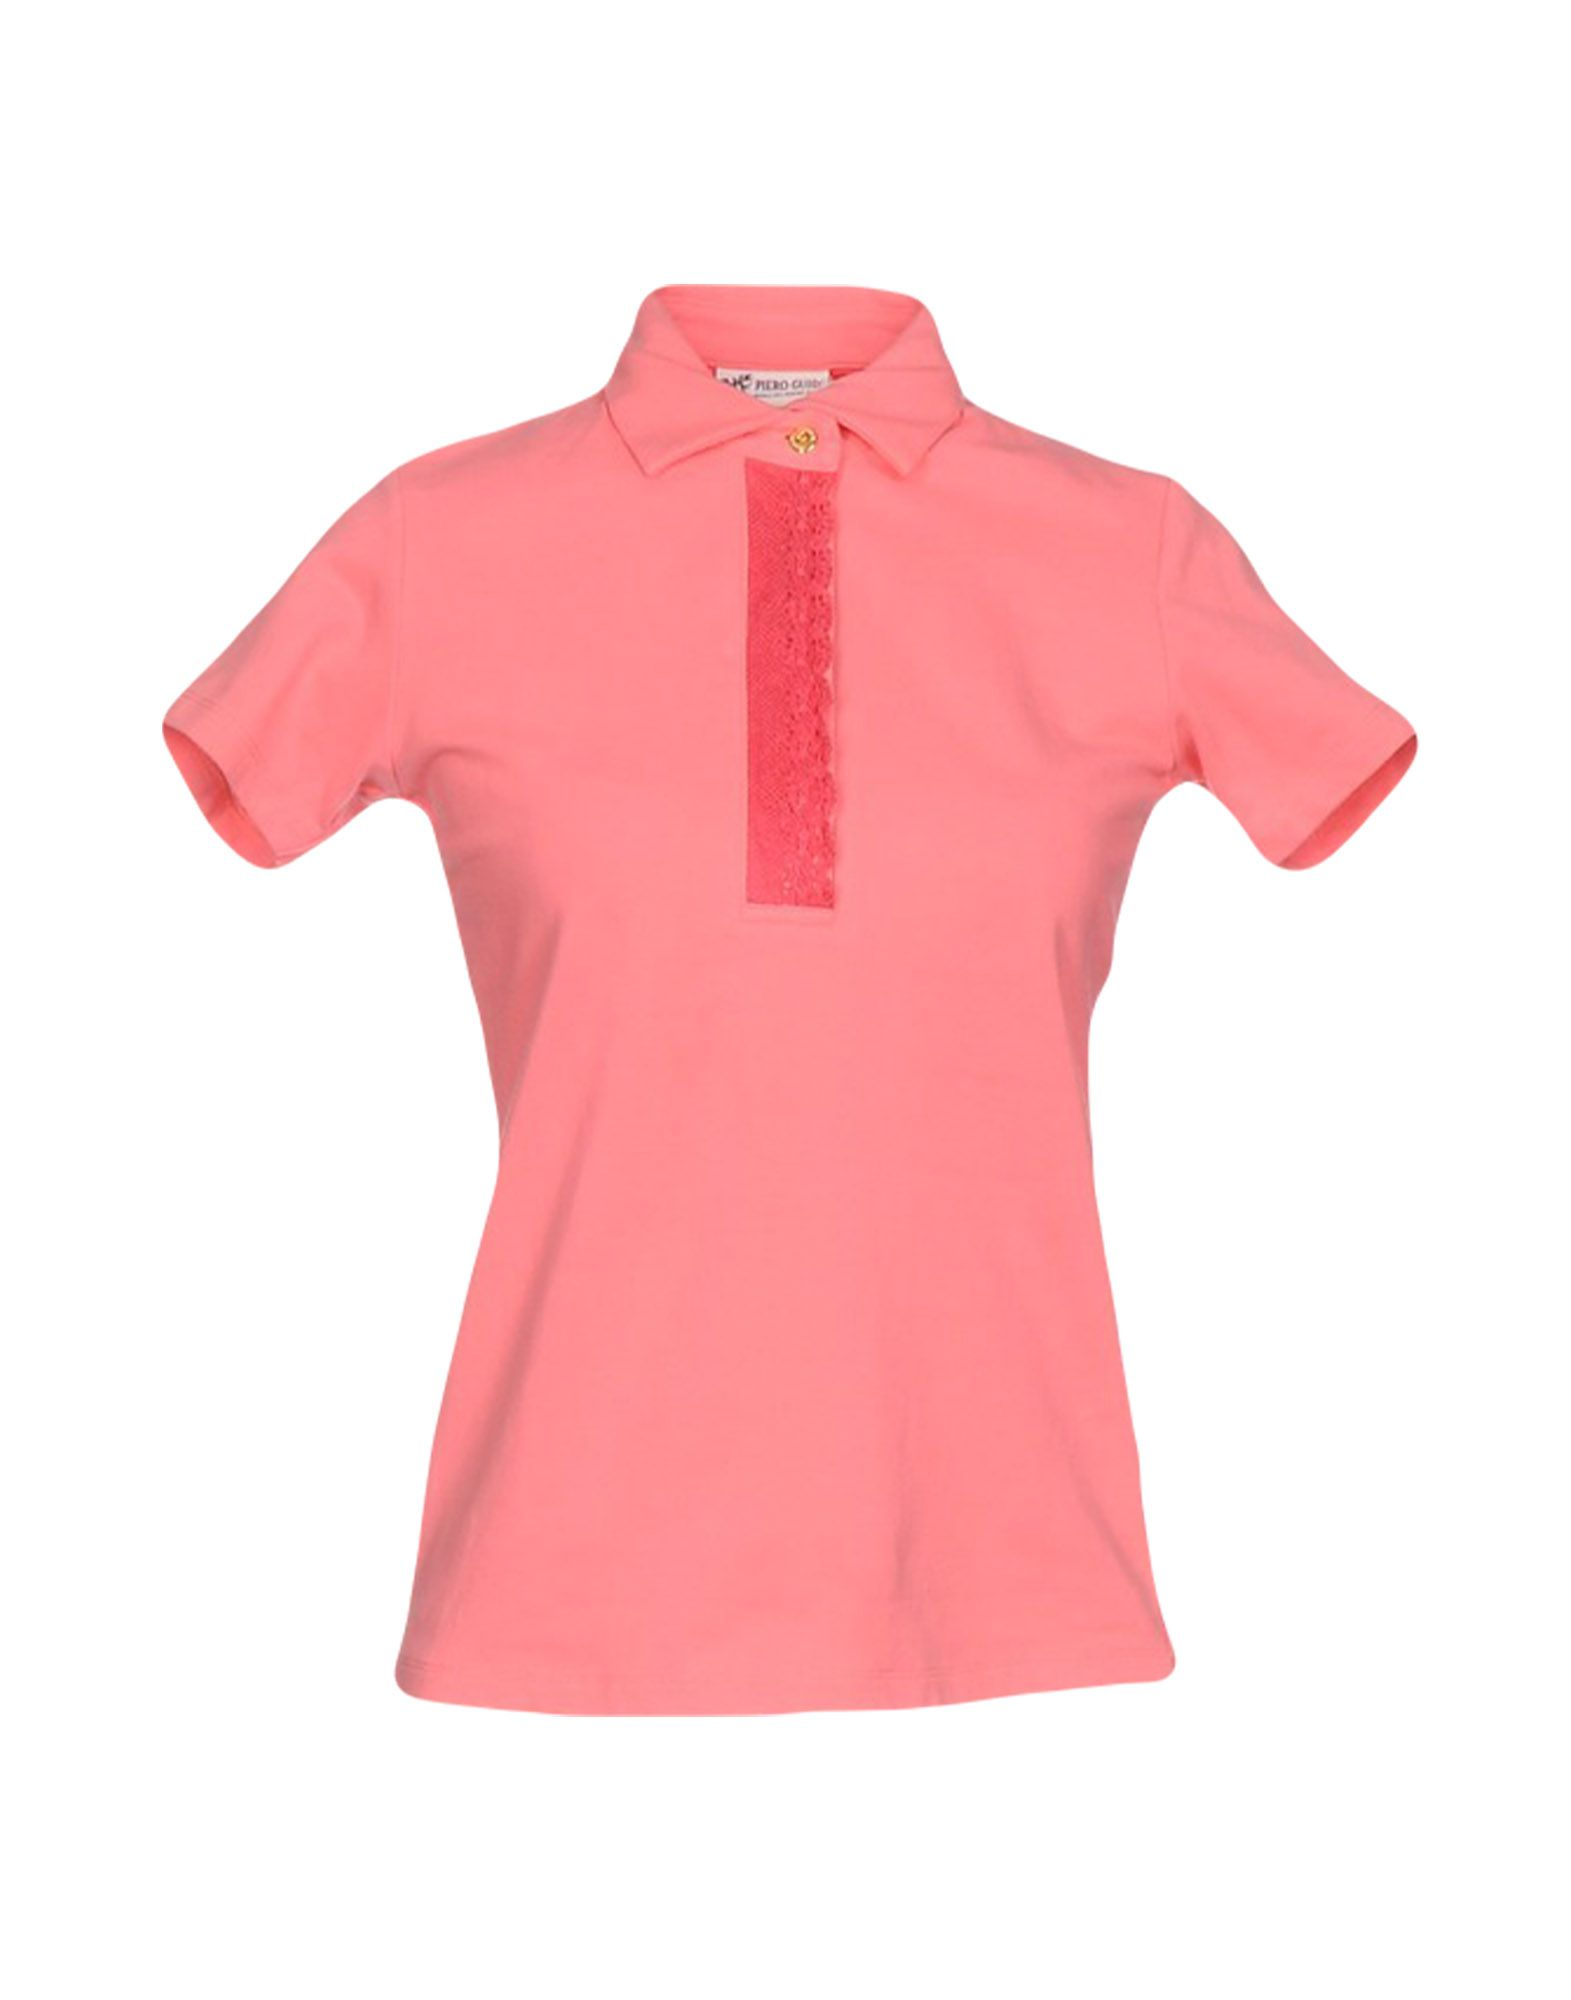 piero guidi female piero guidi polo shirts